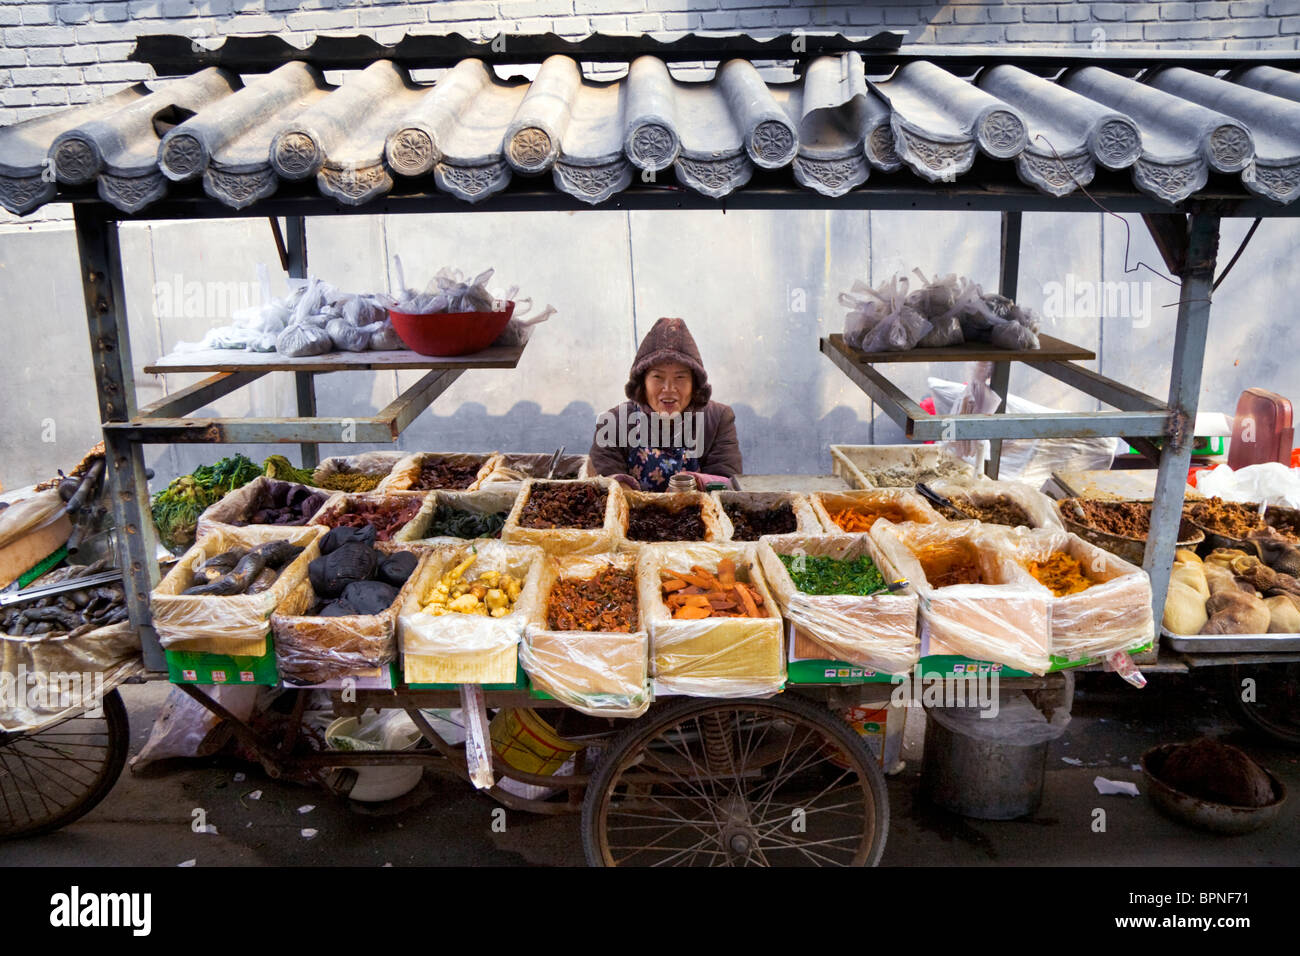 A happy lady tenders her market food stall in the old backstreets of Beijing. Stock Photo